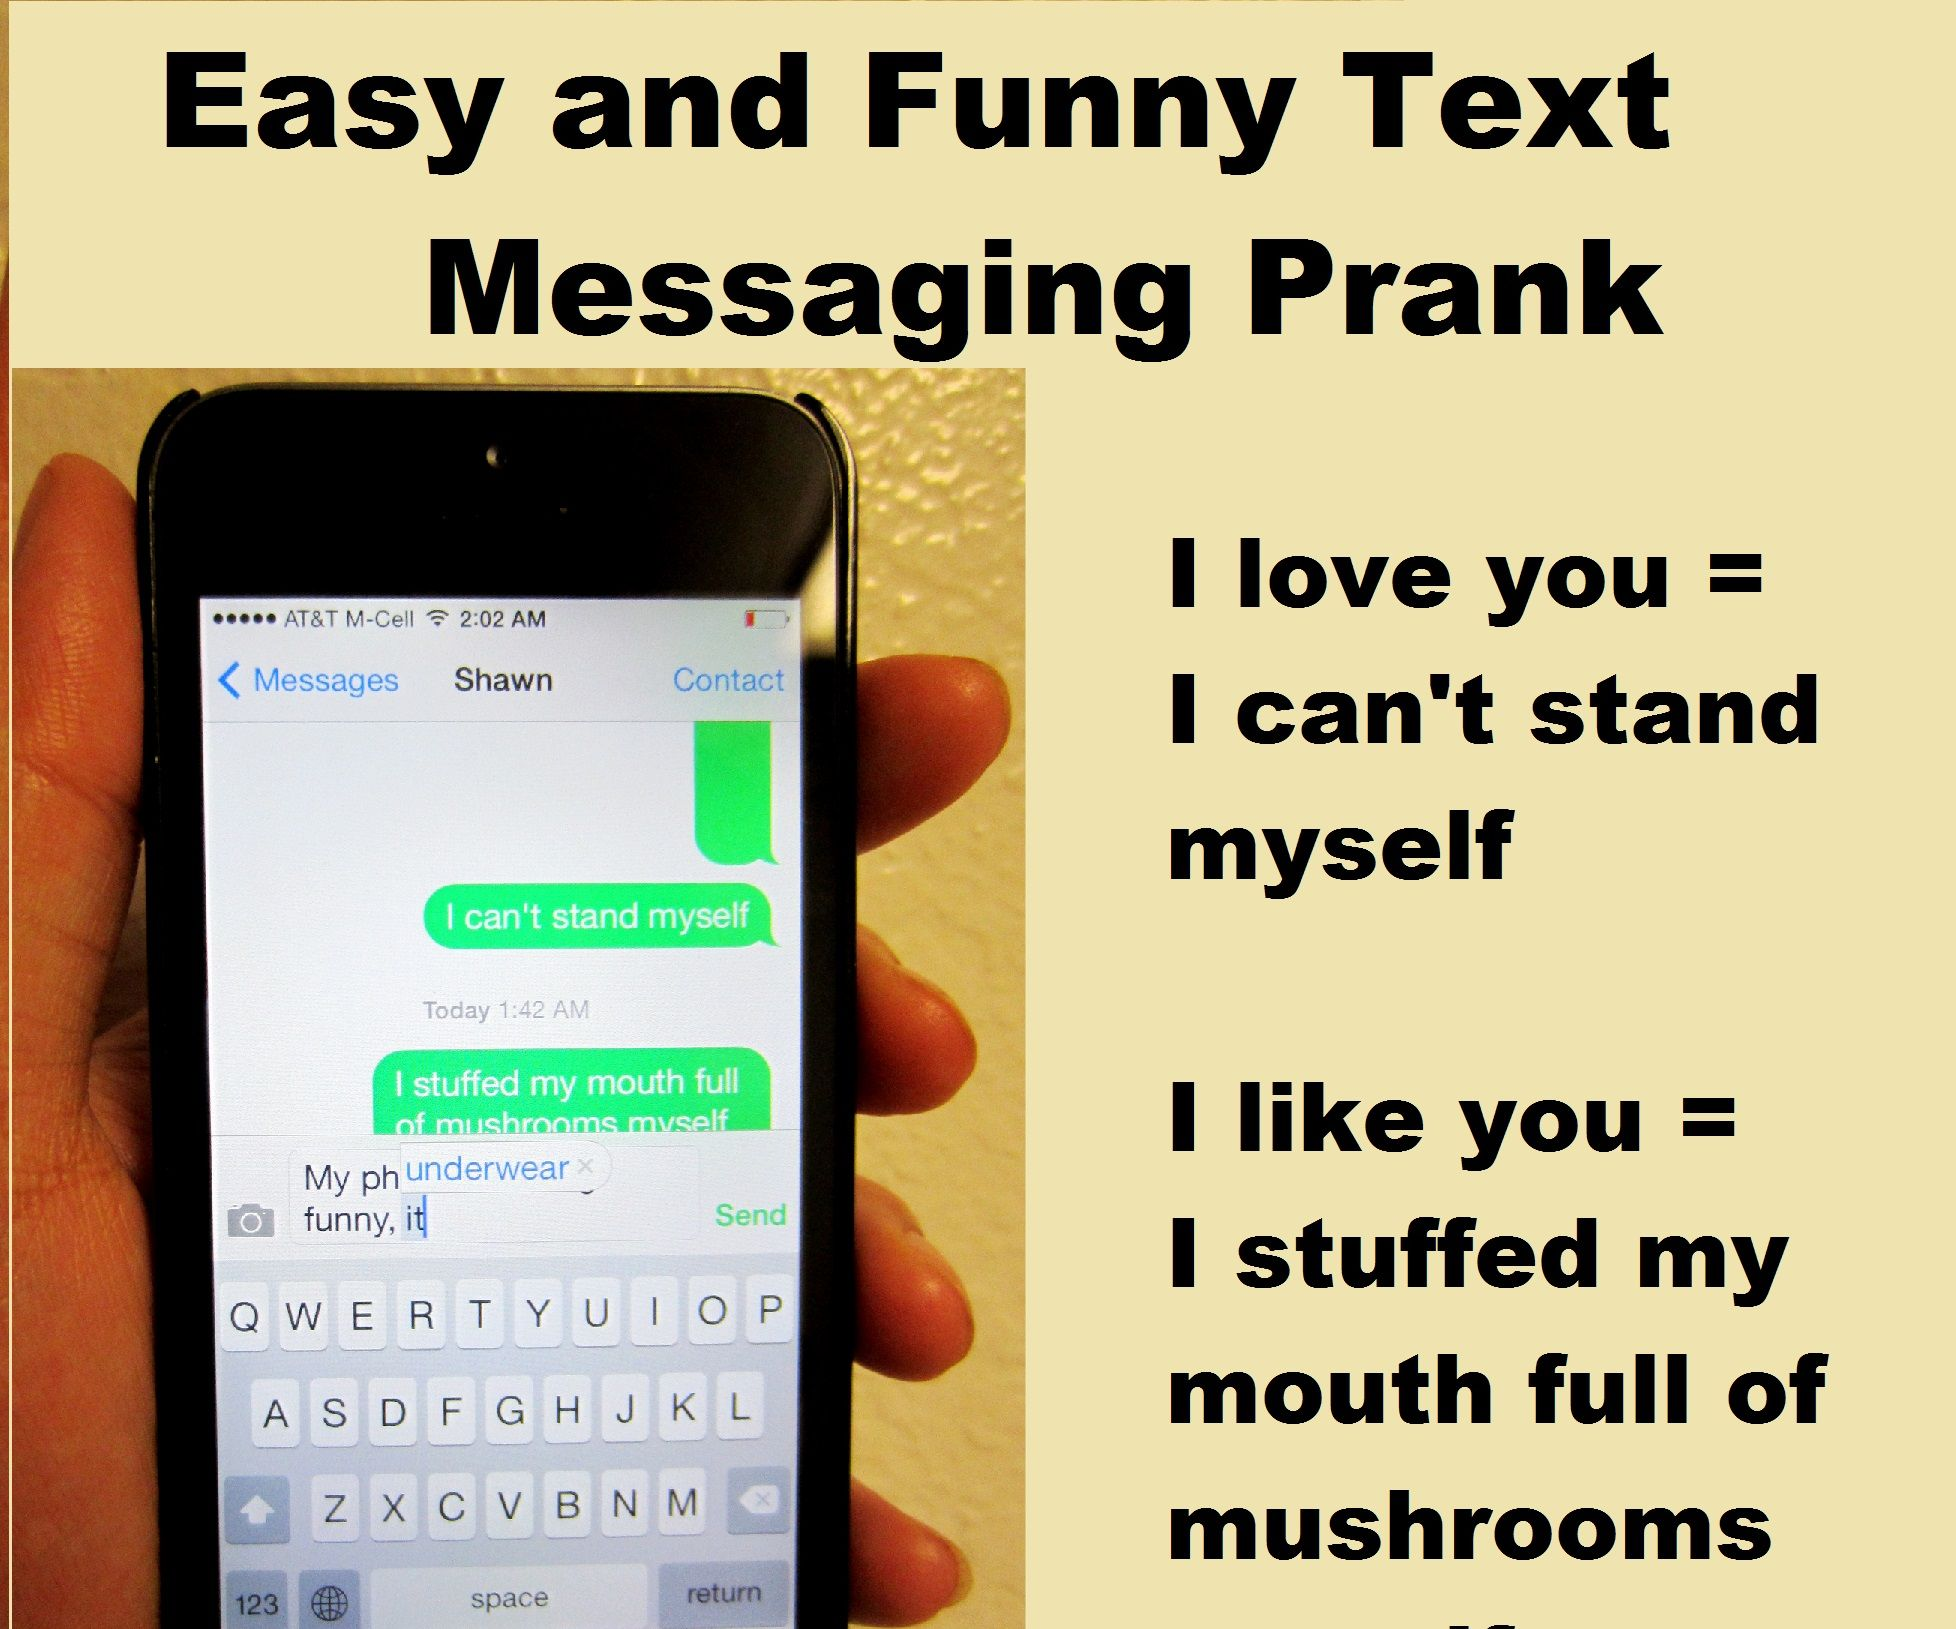 Send funny text messages to my phone